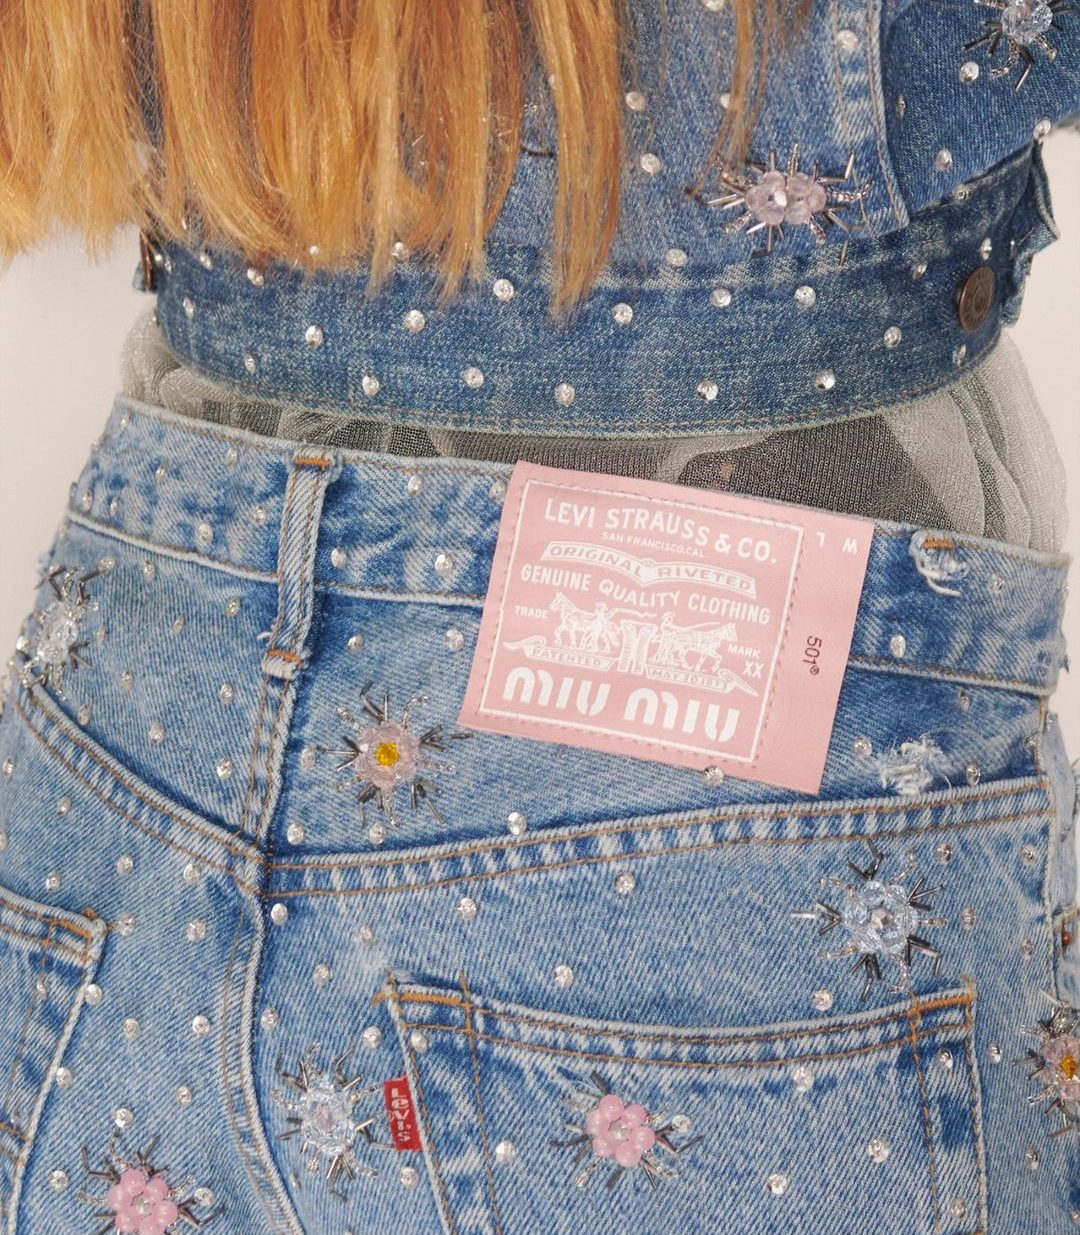 Upcycled By MiuMiu collaboration with Levi's®